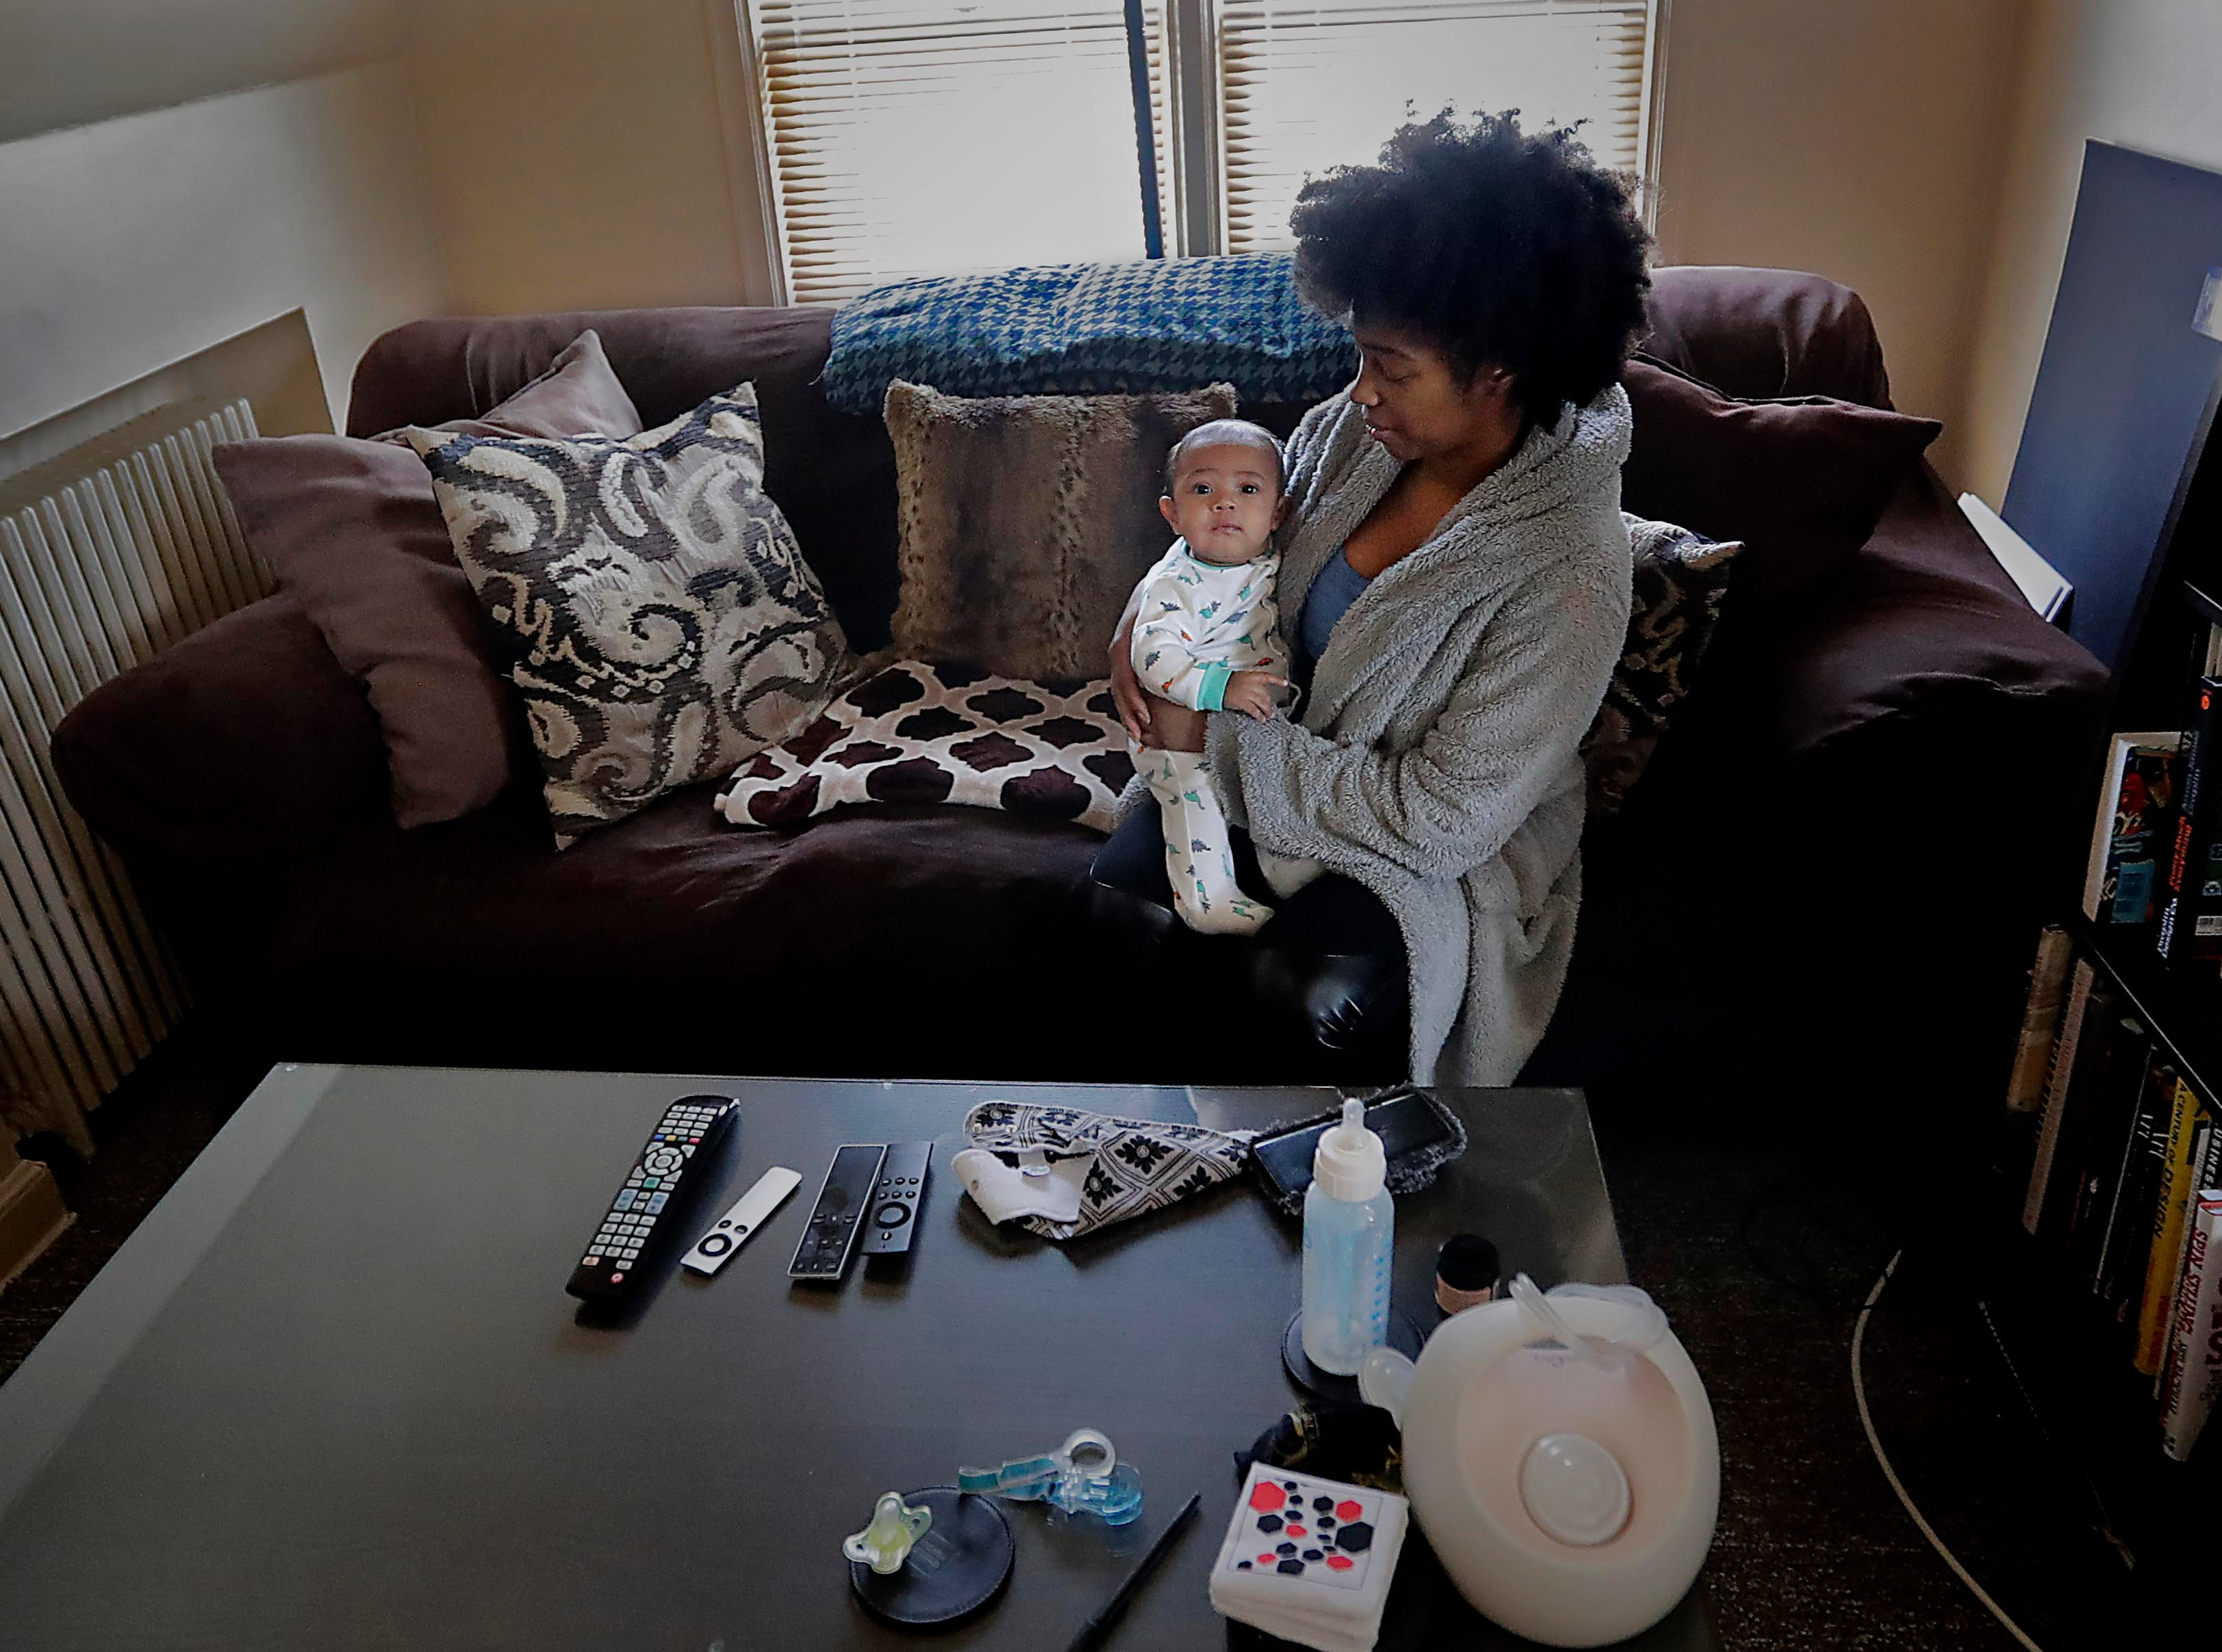 Natasha Lettner cares for her newborn son at her Milwaukee home. Lettner relied on Vanessa Johnson, her doula, for support, education and advocacy during pregnancy and the birthing process.